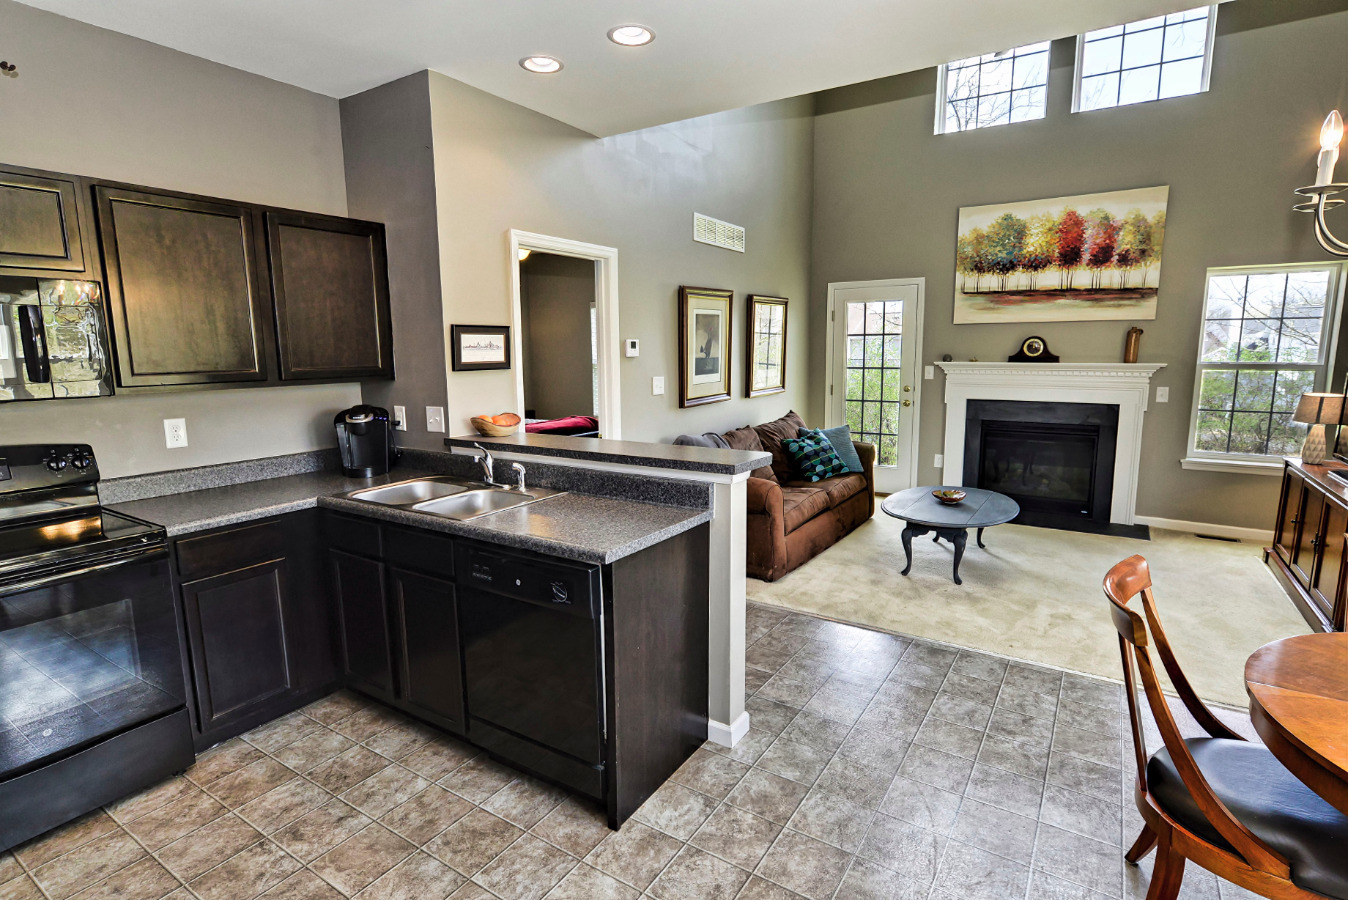 The home has a very open floor plan! Finish last minute dinner tasks while still